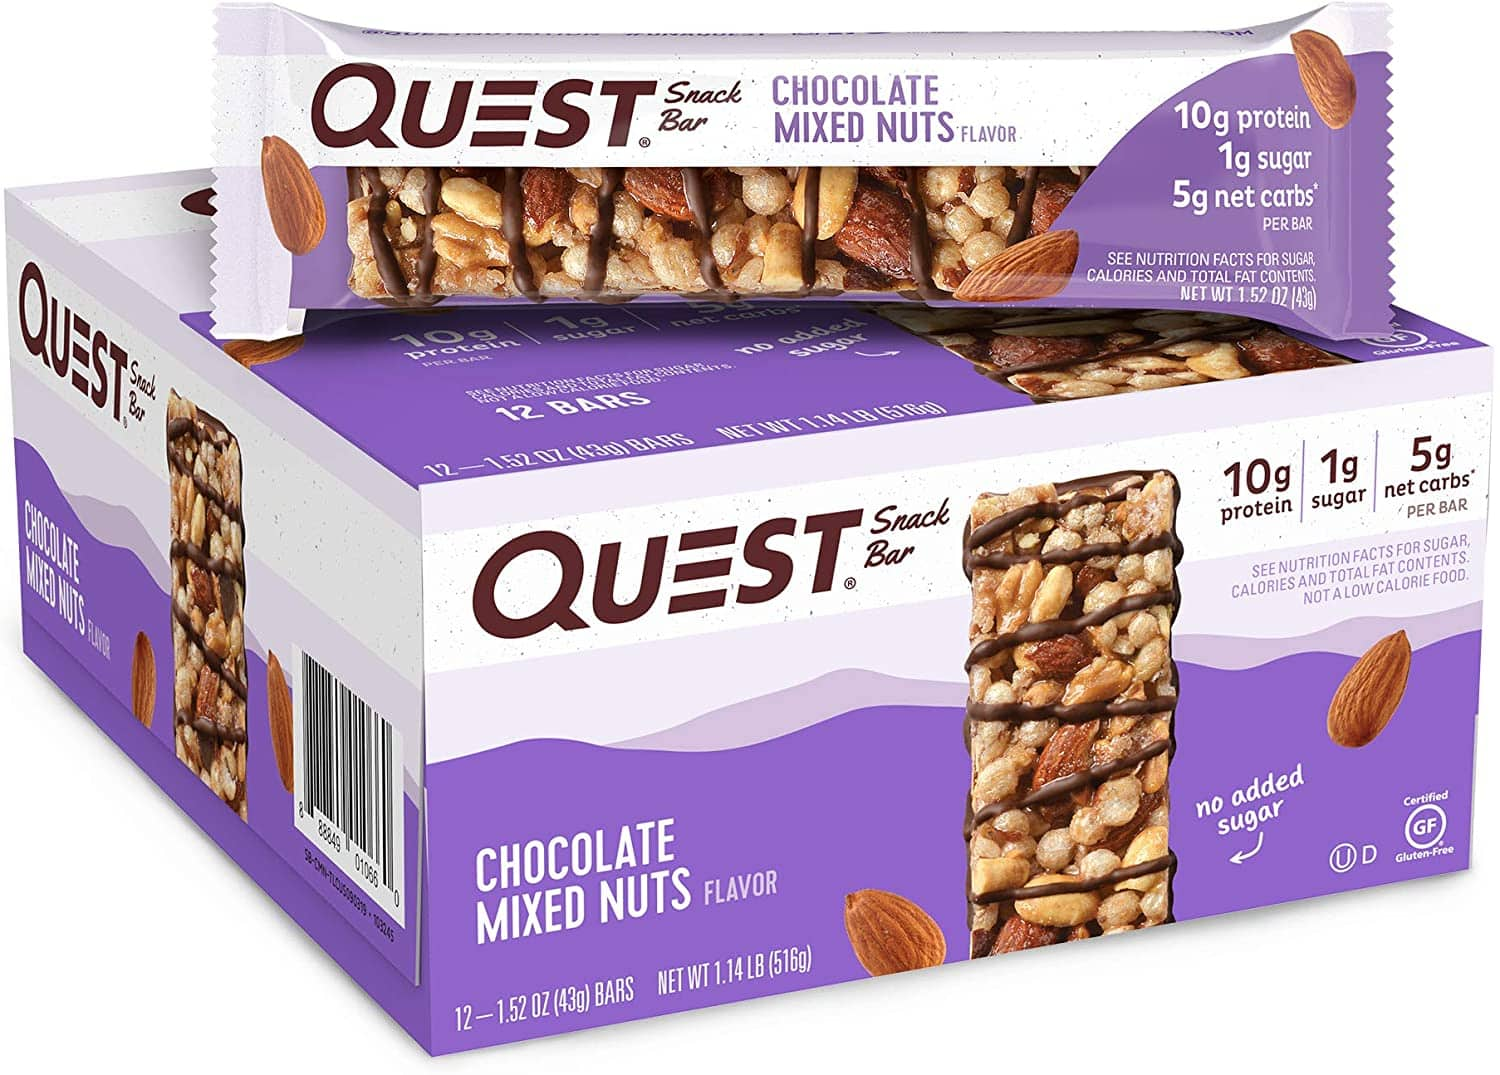 Quest Nutrition Chocolate Mixed Nuts Snack Bar 1.52 Ounce 12-pack  $10.79 w/coupon Amazon